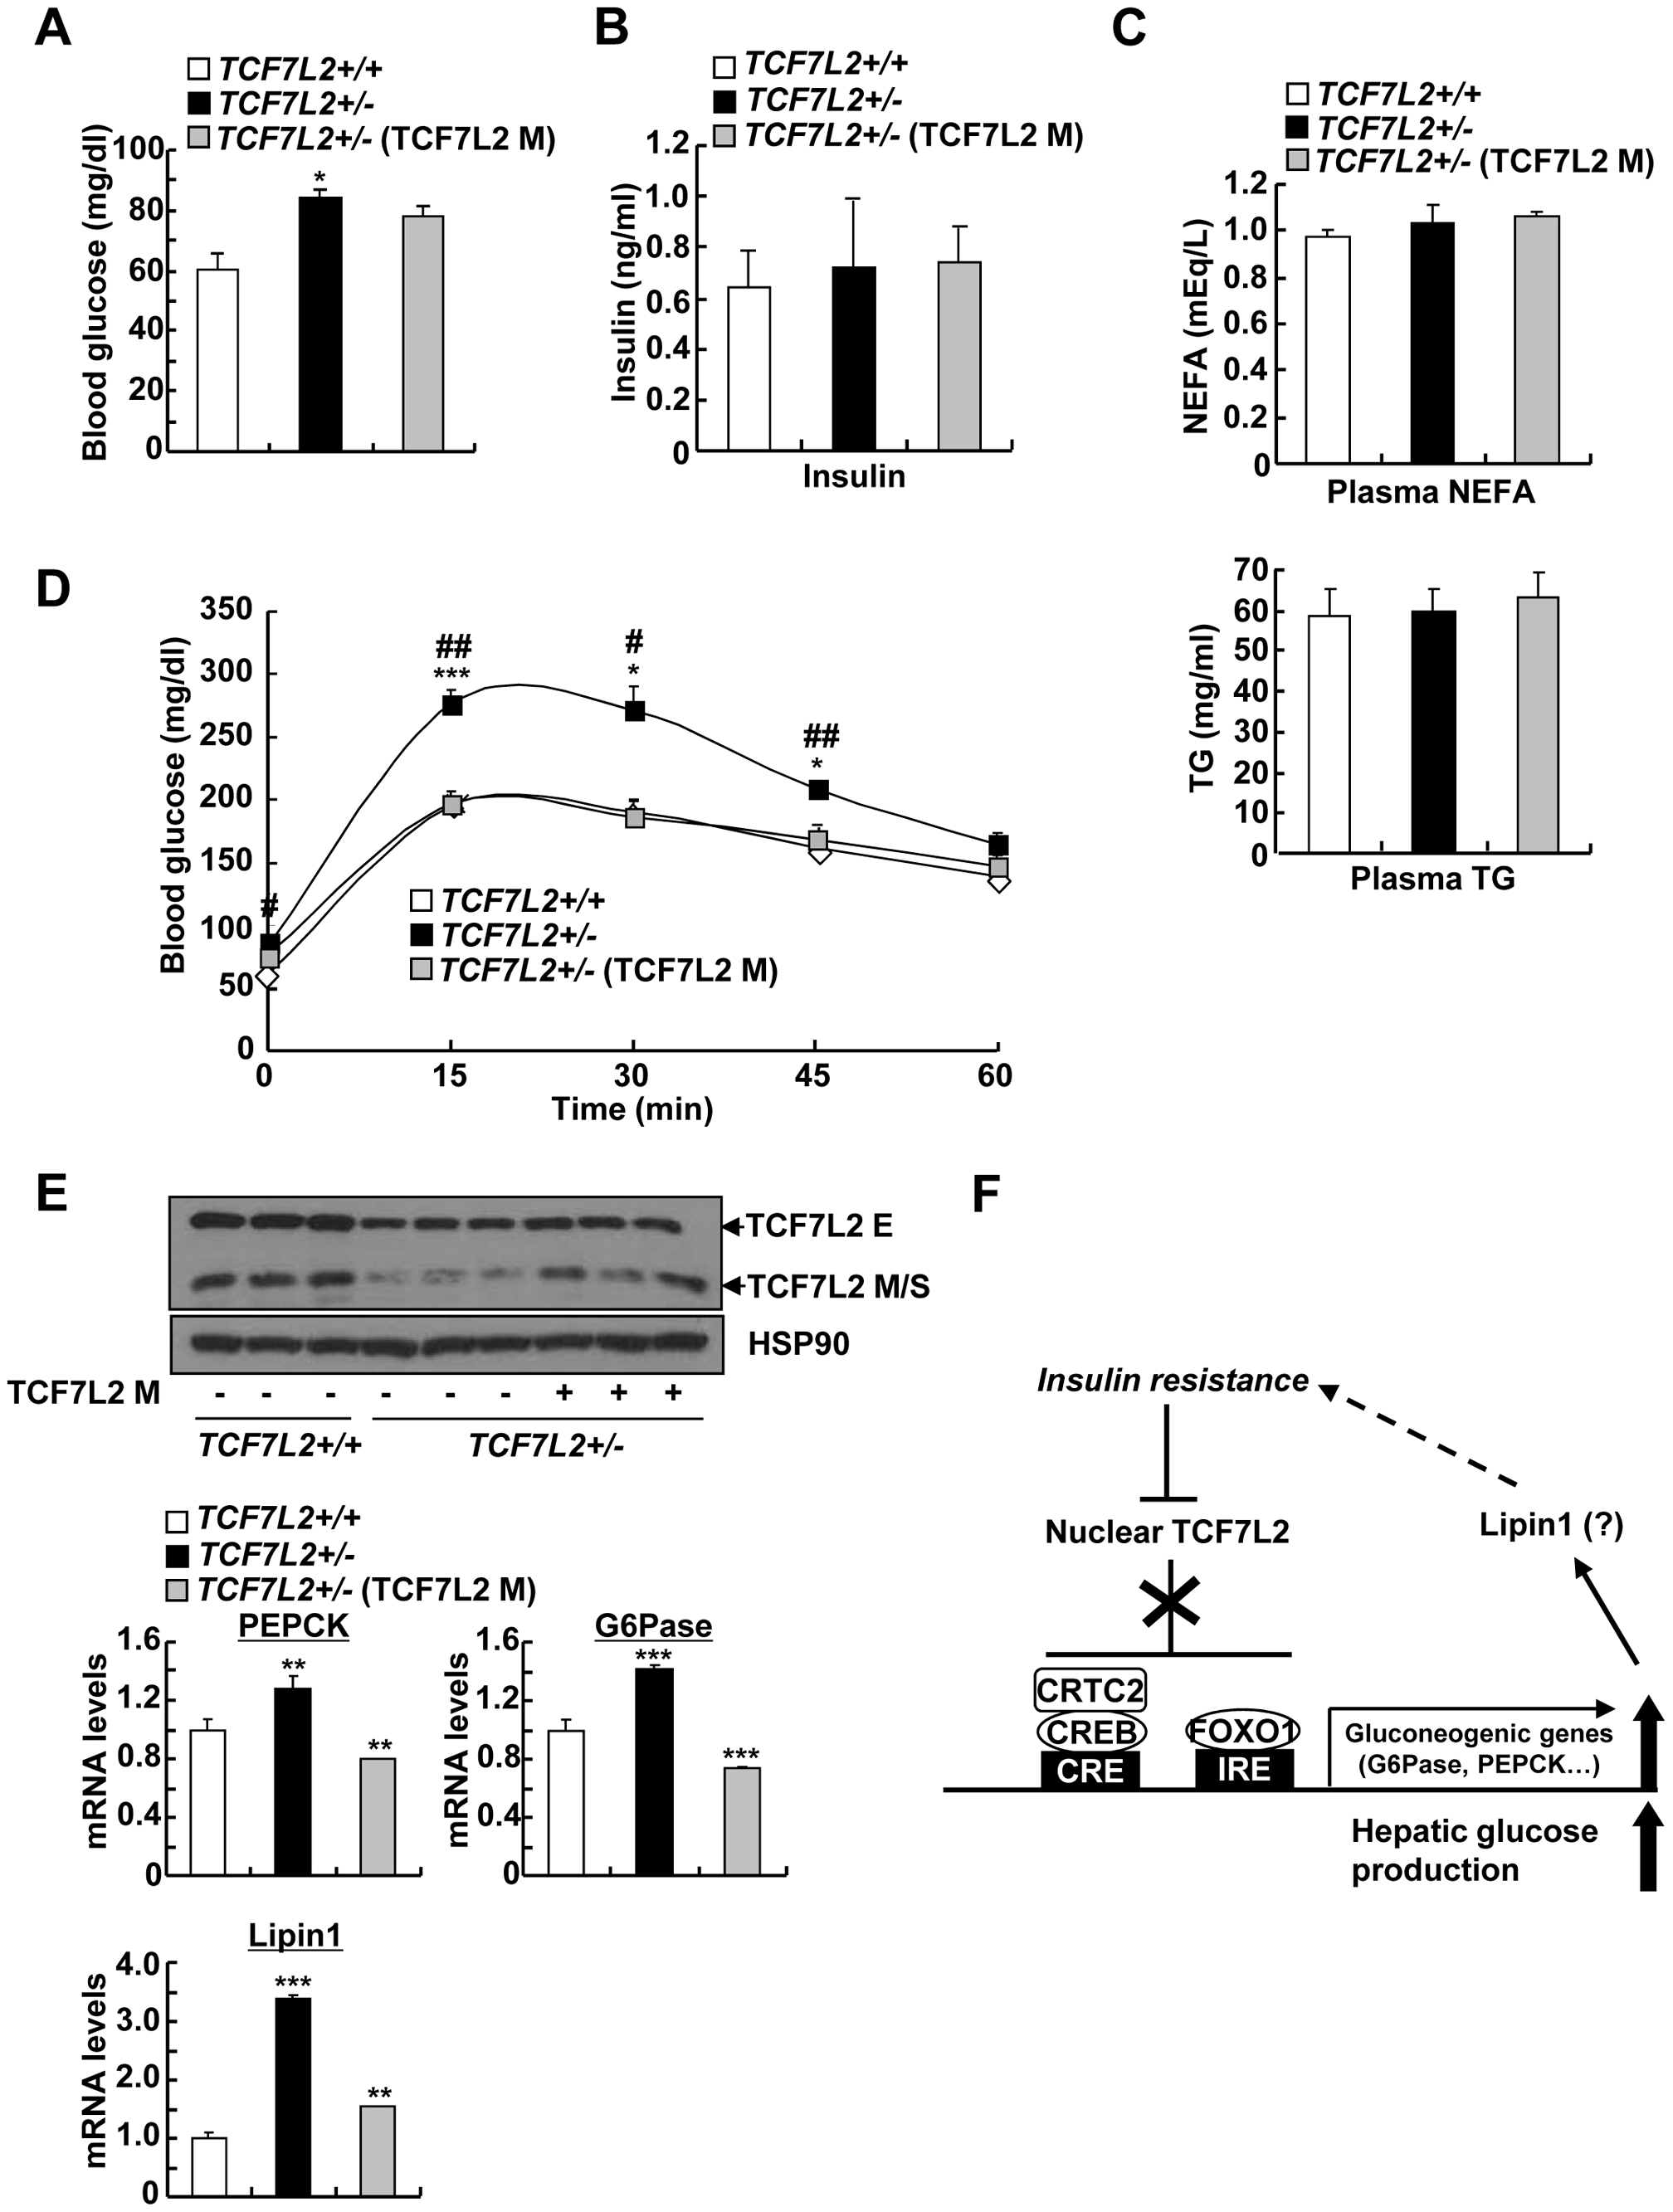 Mild ectopic expression of TCF7L2 M in the liver improves glycemic phenotypes in TCF7L2+/- mice.